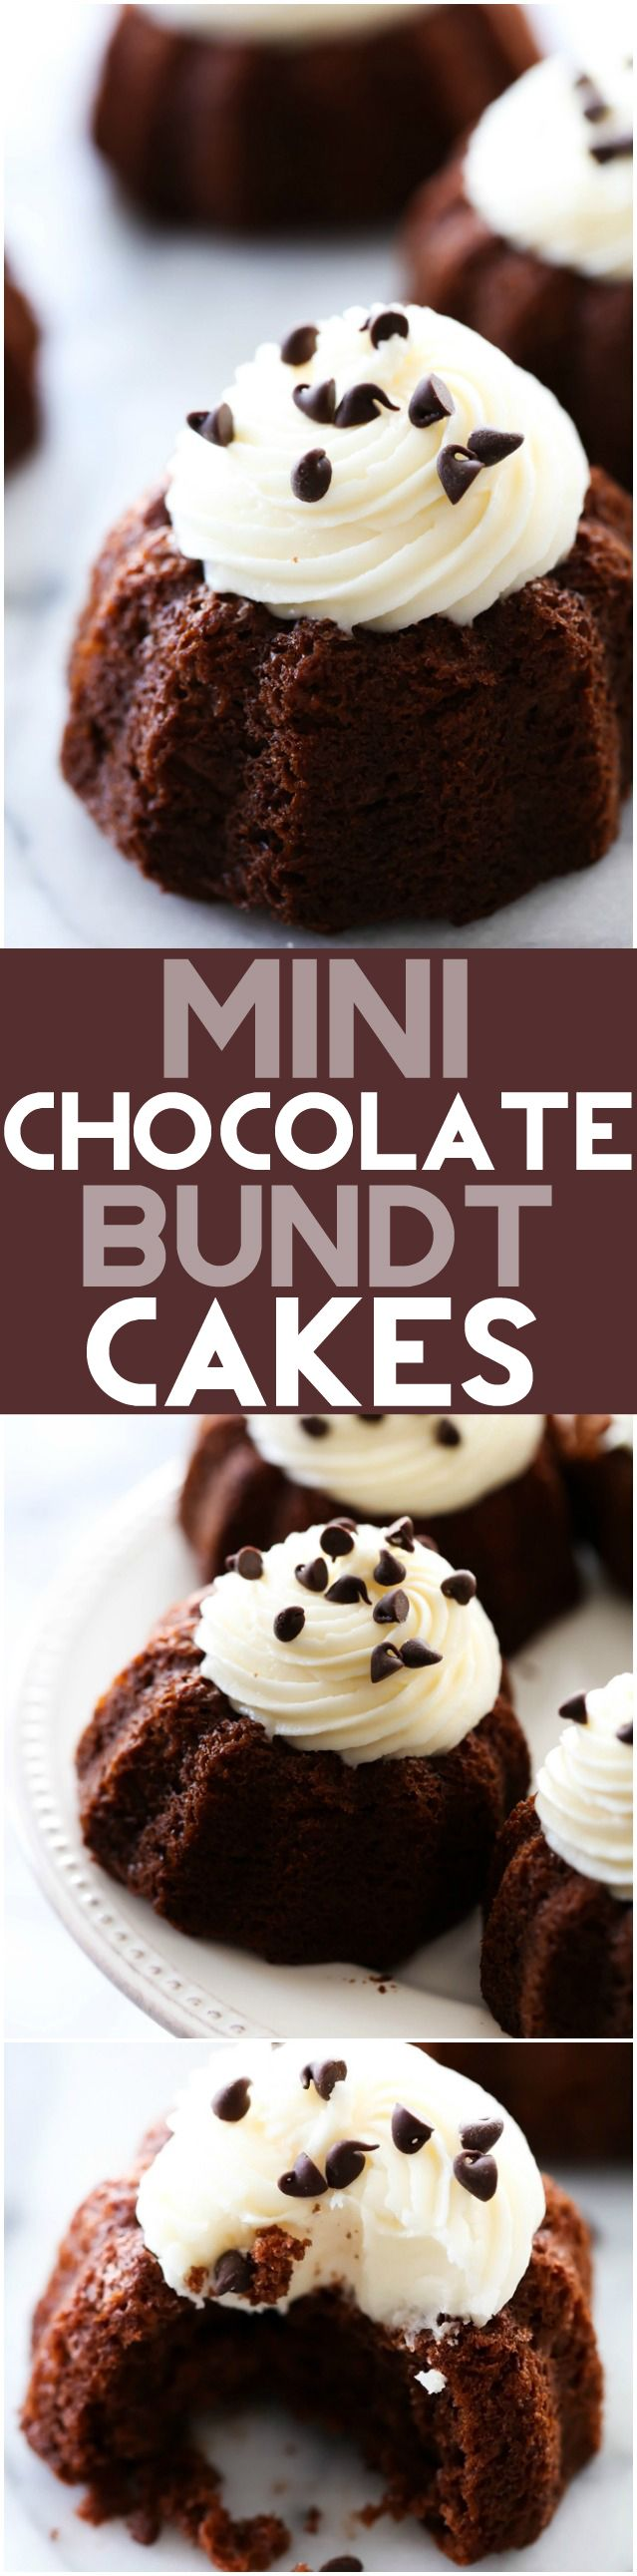 Mini Chocolate Bundt Cakes... These are an extremely moist chocolate cake with a delicious cream cheese frosting on top. It makes for an easy and tasty personal size treat!